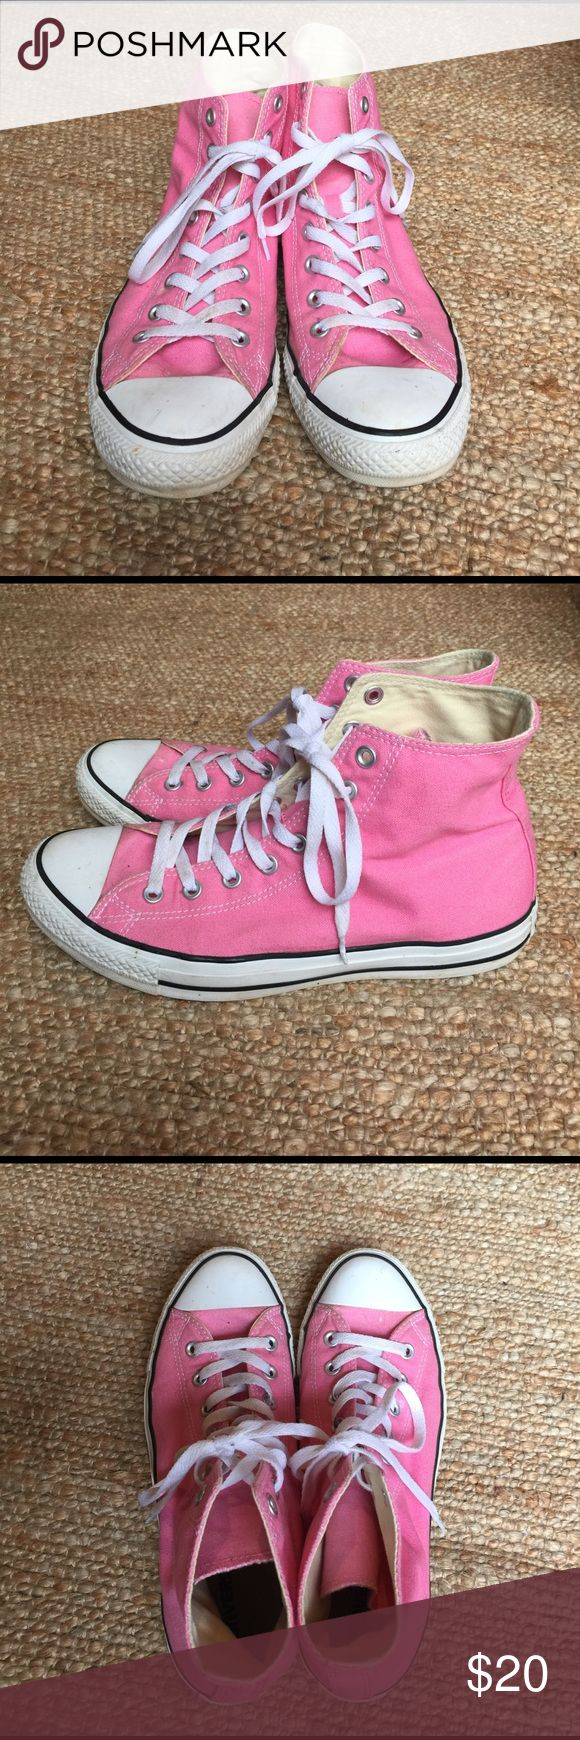 Pink high top converse Women's size 11 Men's 9.5 Pink high top converse Women's size 11 Men's 9.5. I bought them new and I've worn the probably like 10 - 15 times. They have some signs of wear around the bottom white trim from walking outside but they are in great shape! Converse Shoes Sneakers